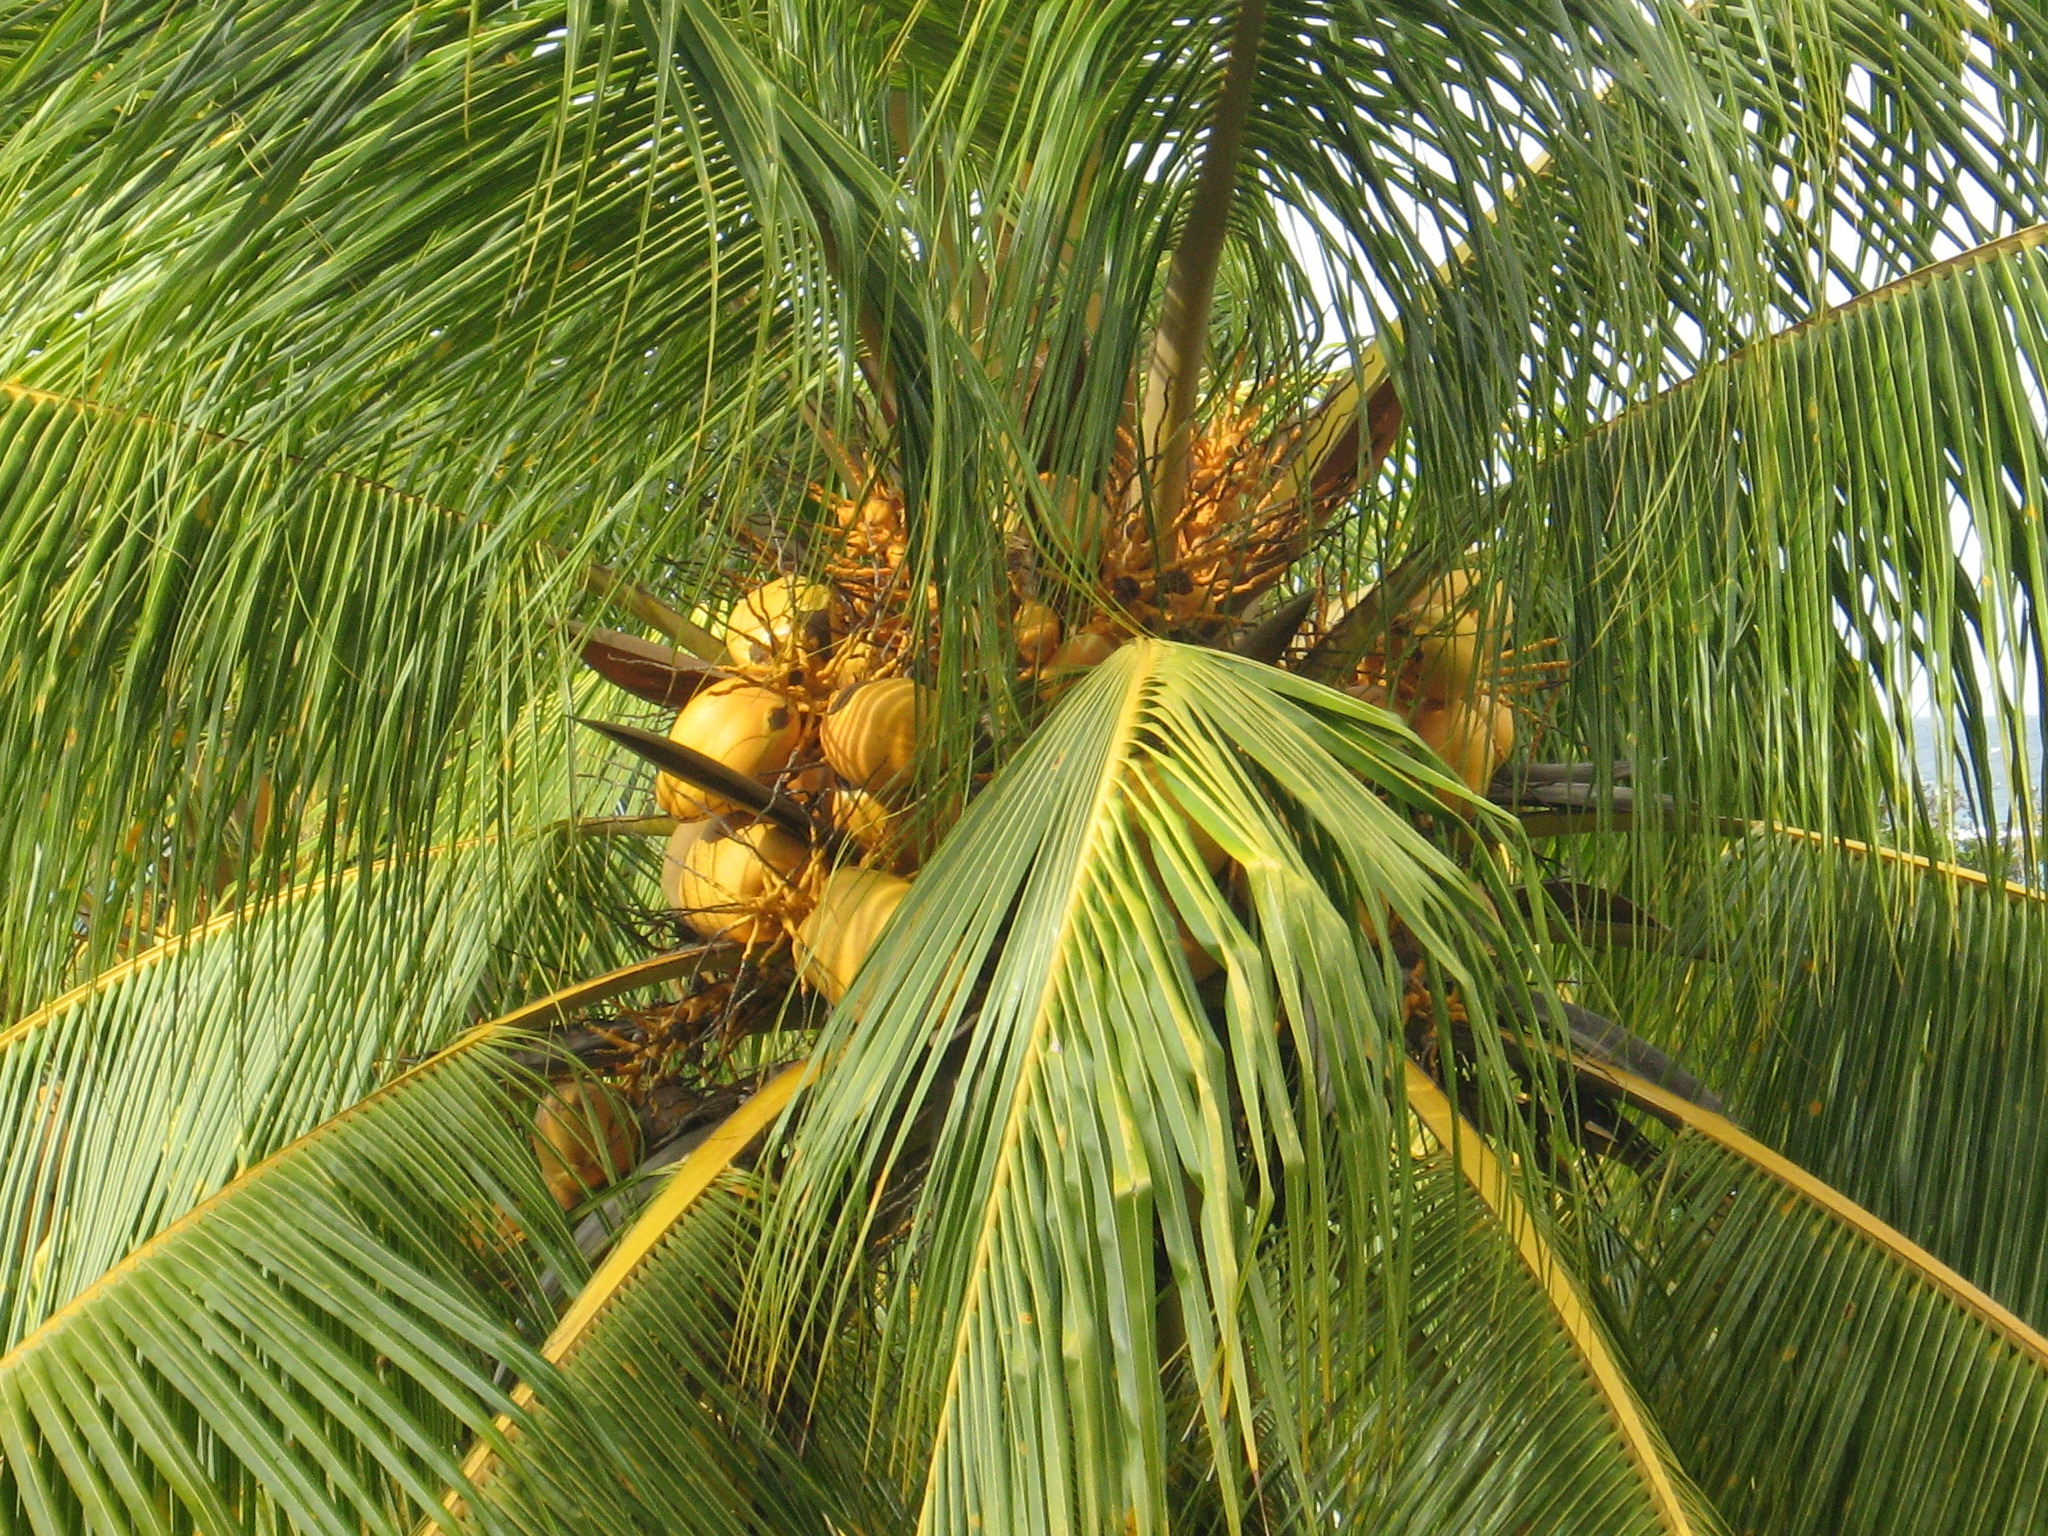 coconut tree The coconut tree is a large, single-trunked palm with a smooth trunk in a light gray-brown color the leaves or fronds are long and thin, topping the tree like a crown.